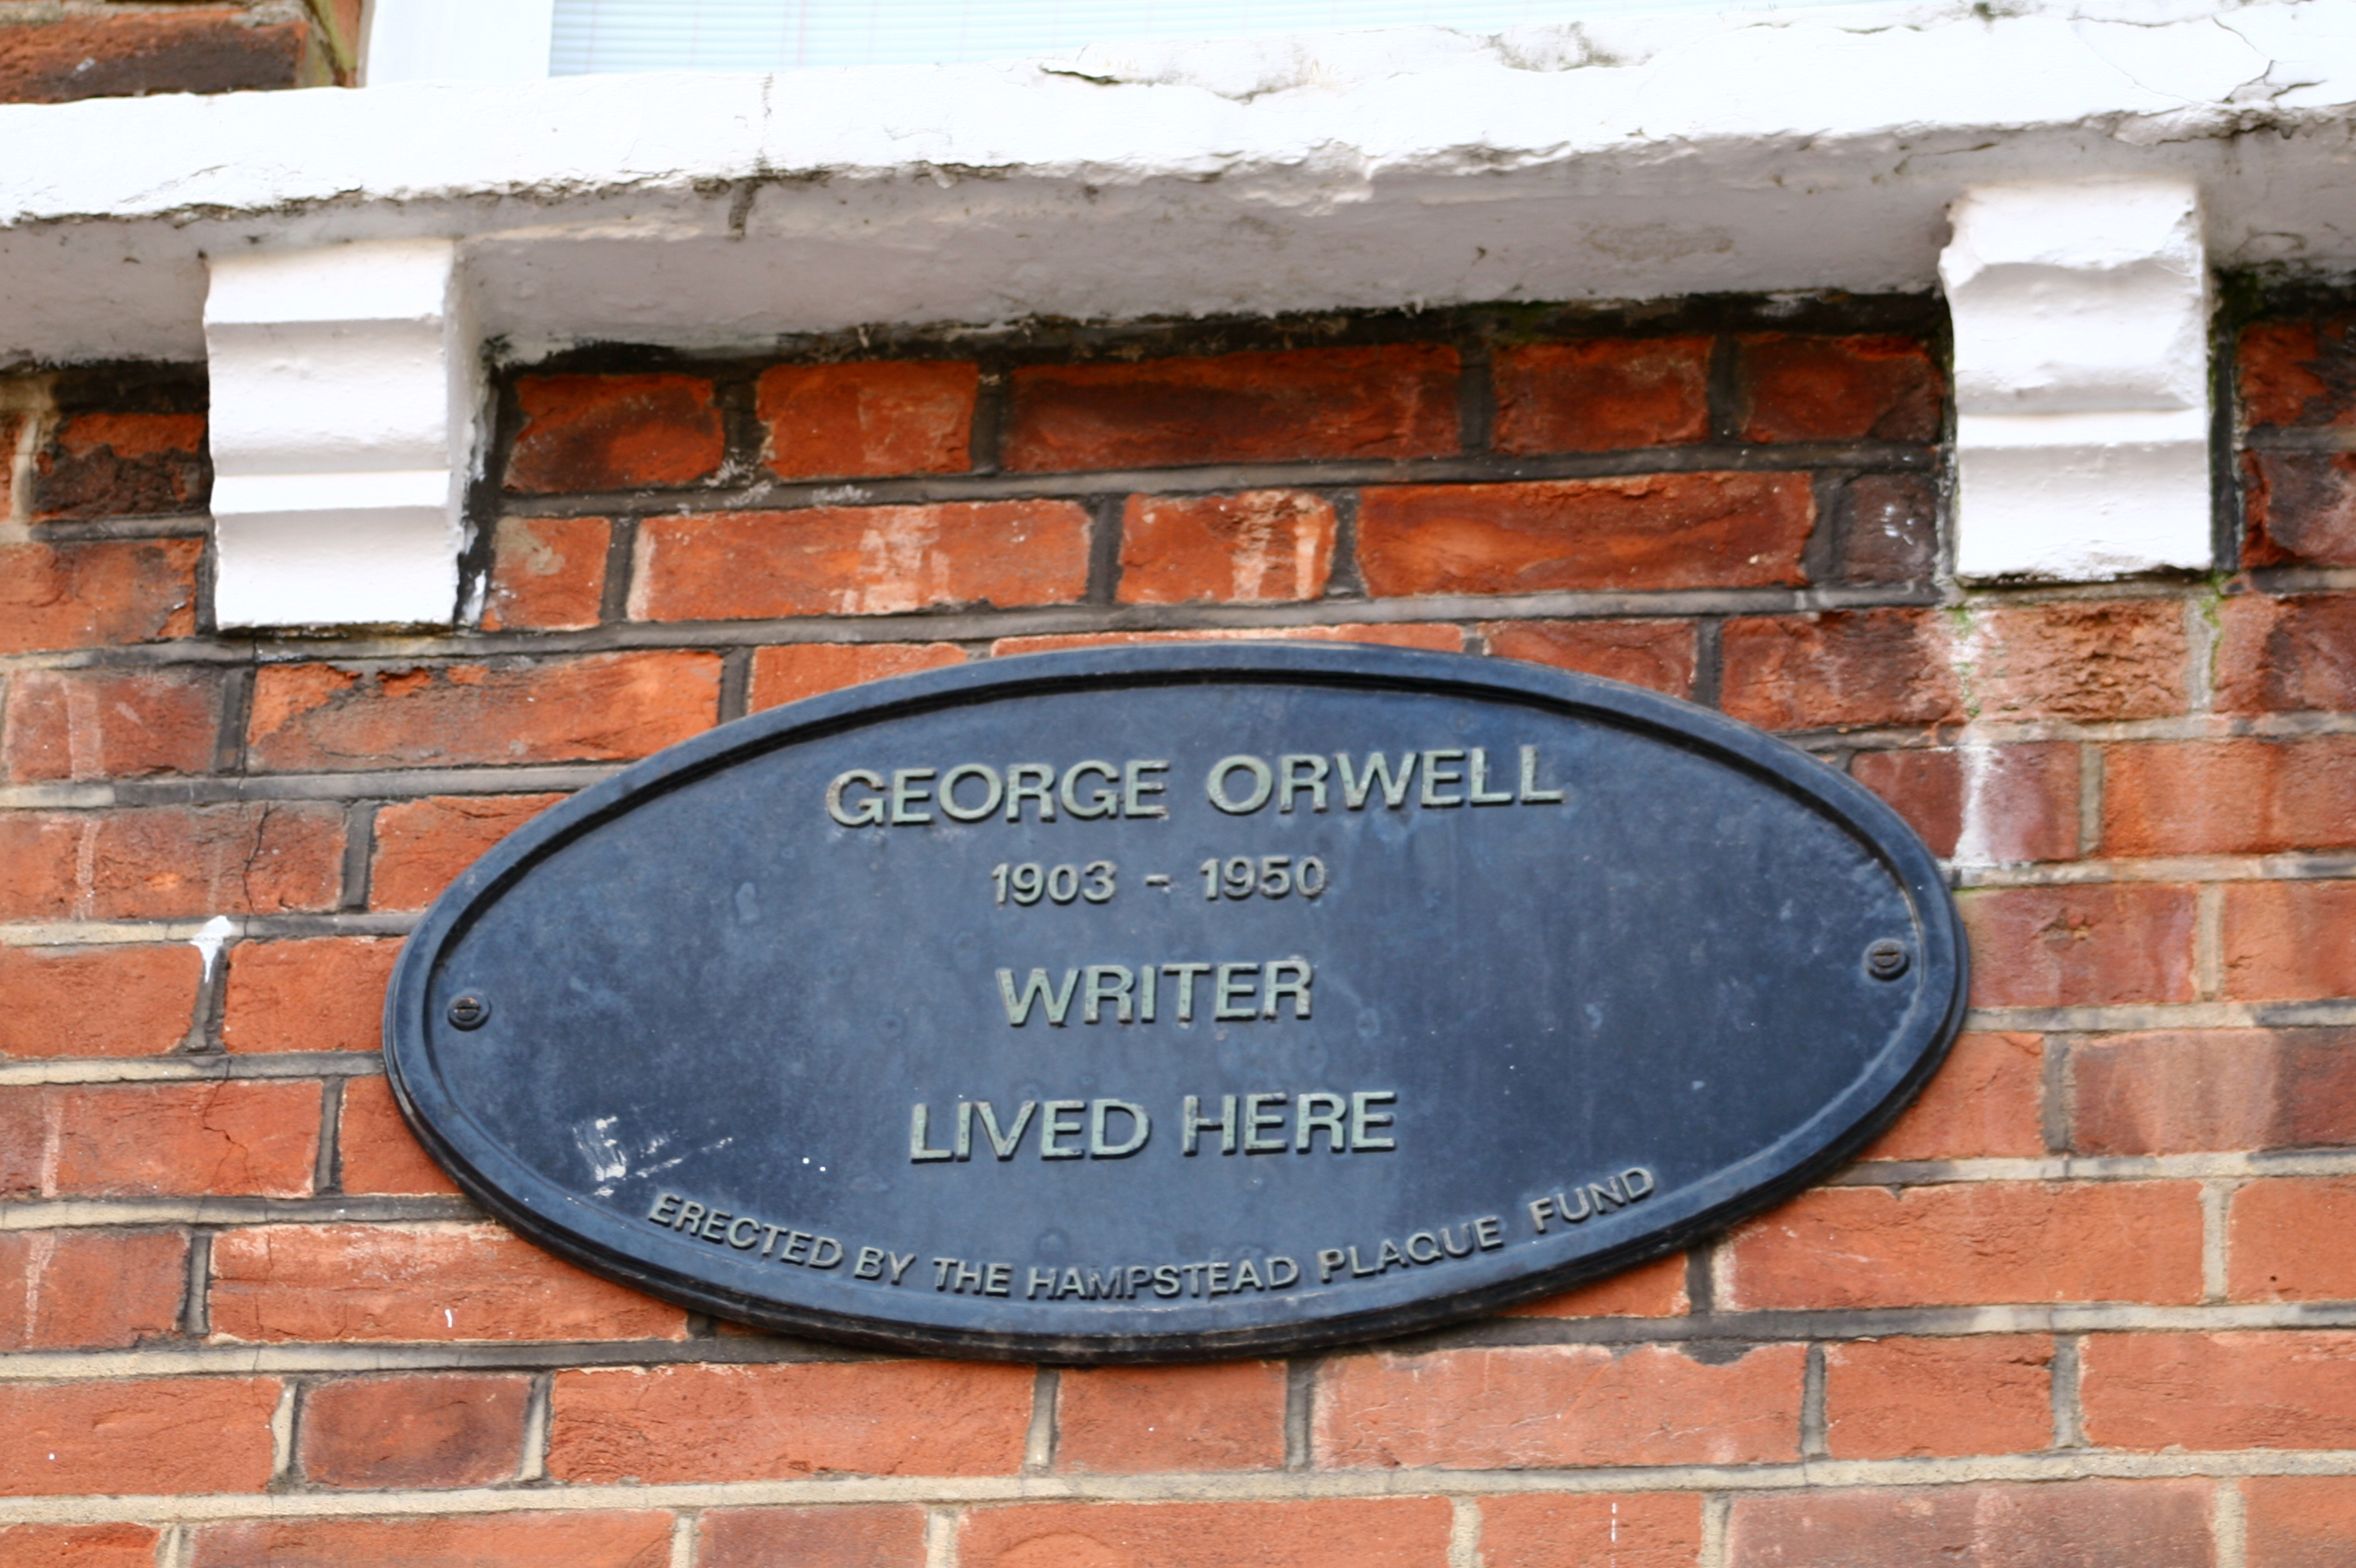 a hanging by george orwell A hanging by george orwell it was in burma, a sodden morning of the rains a sickly light, like yellow tinfoil, was slanting over the high walls into the jail yard.